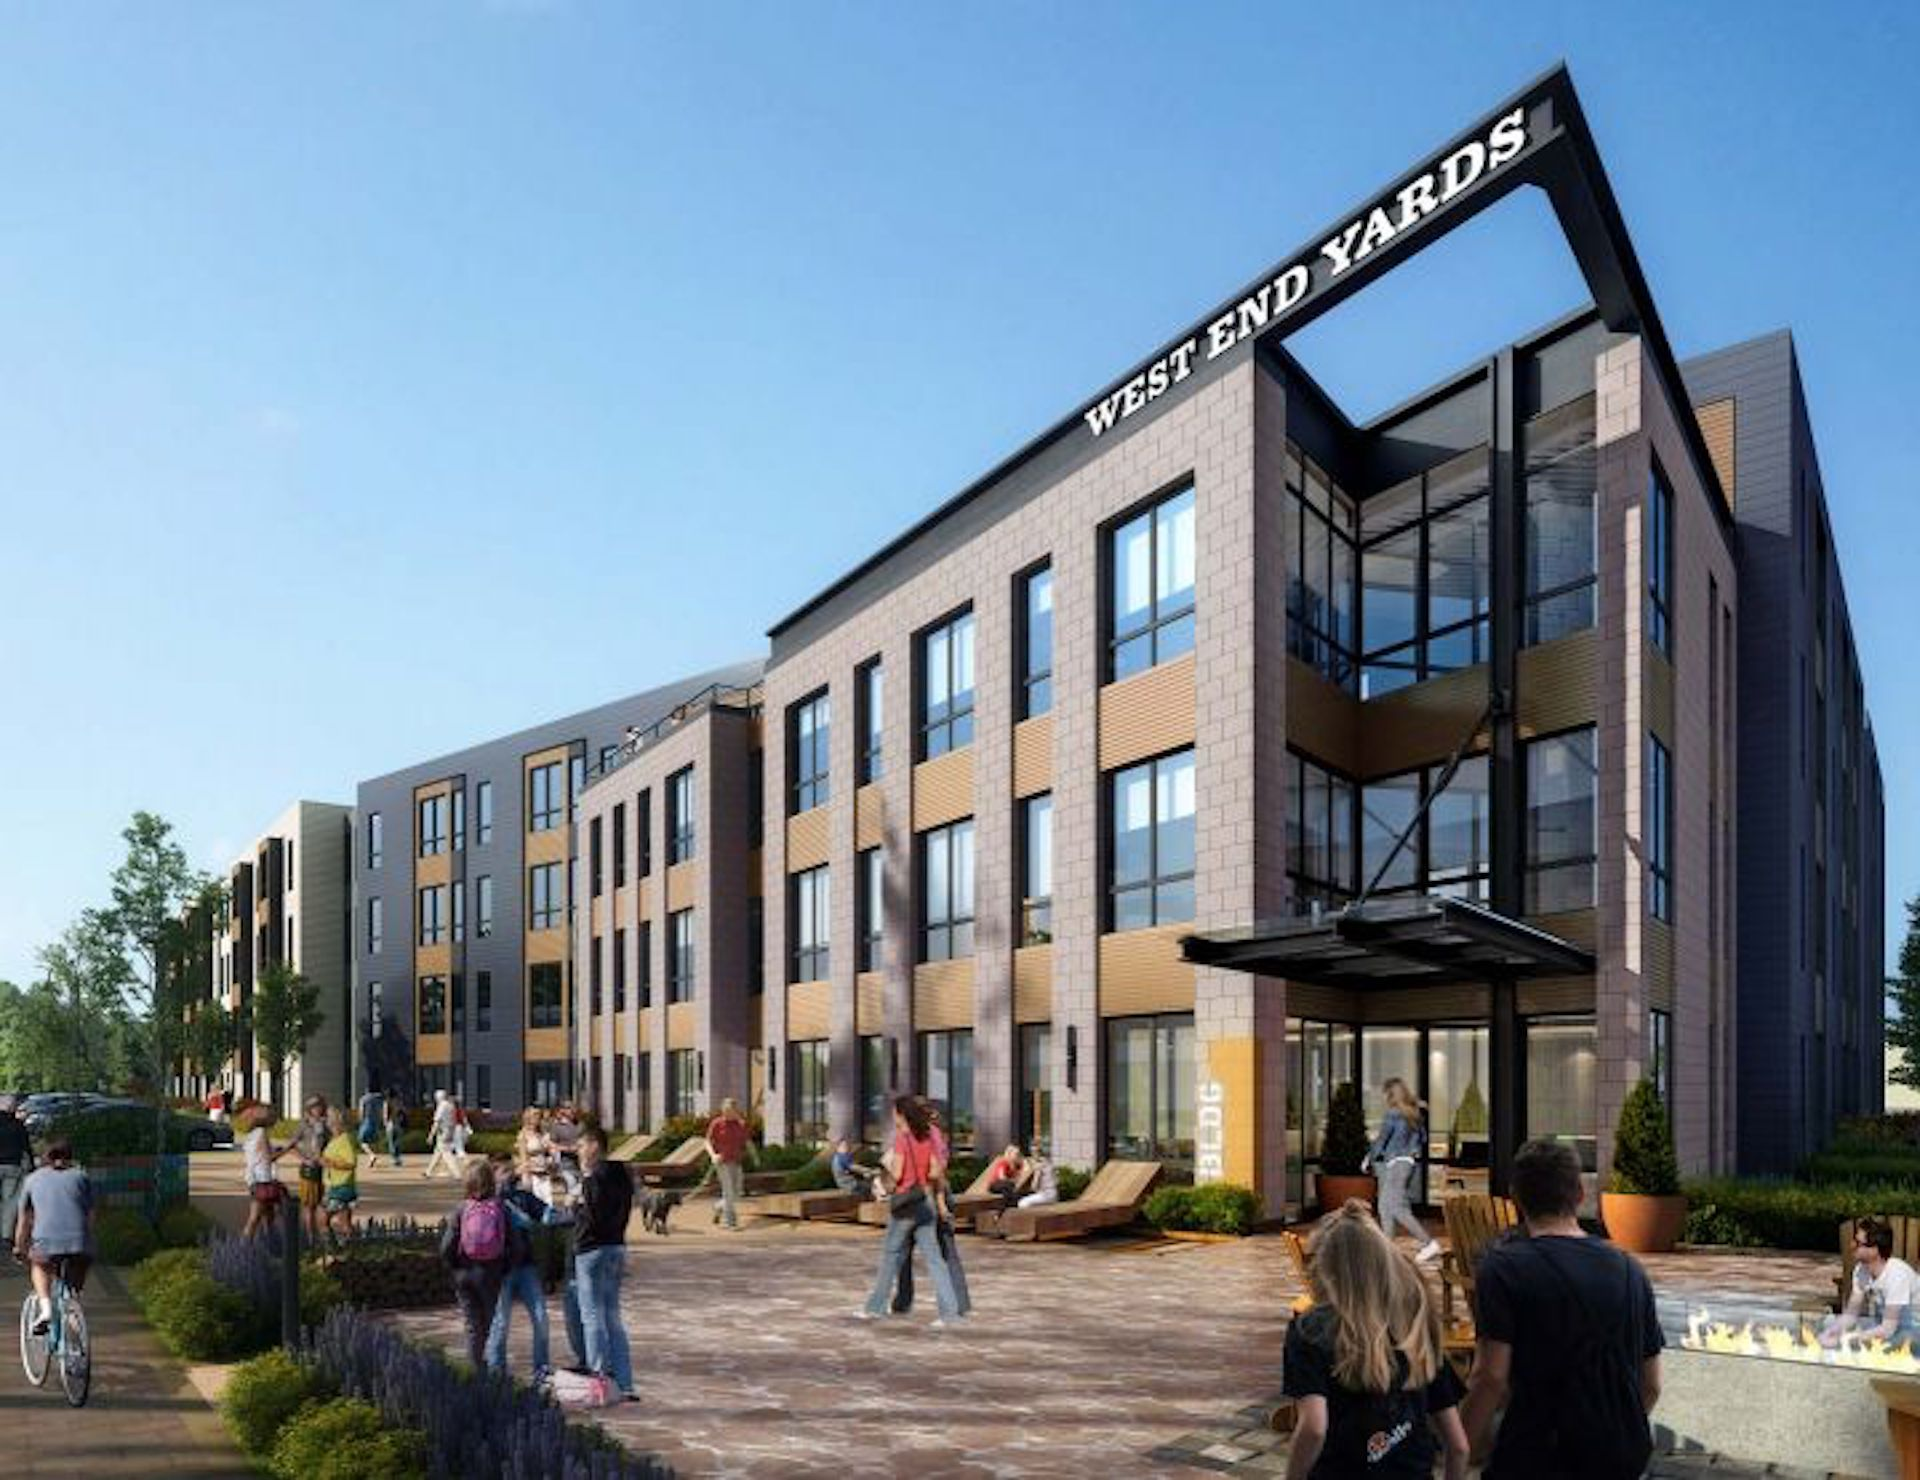 West End Yards Apartments, managed by Dolben, in Portsmouth, New Hampshire